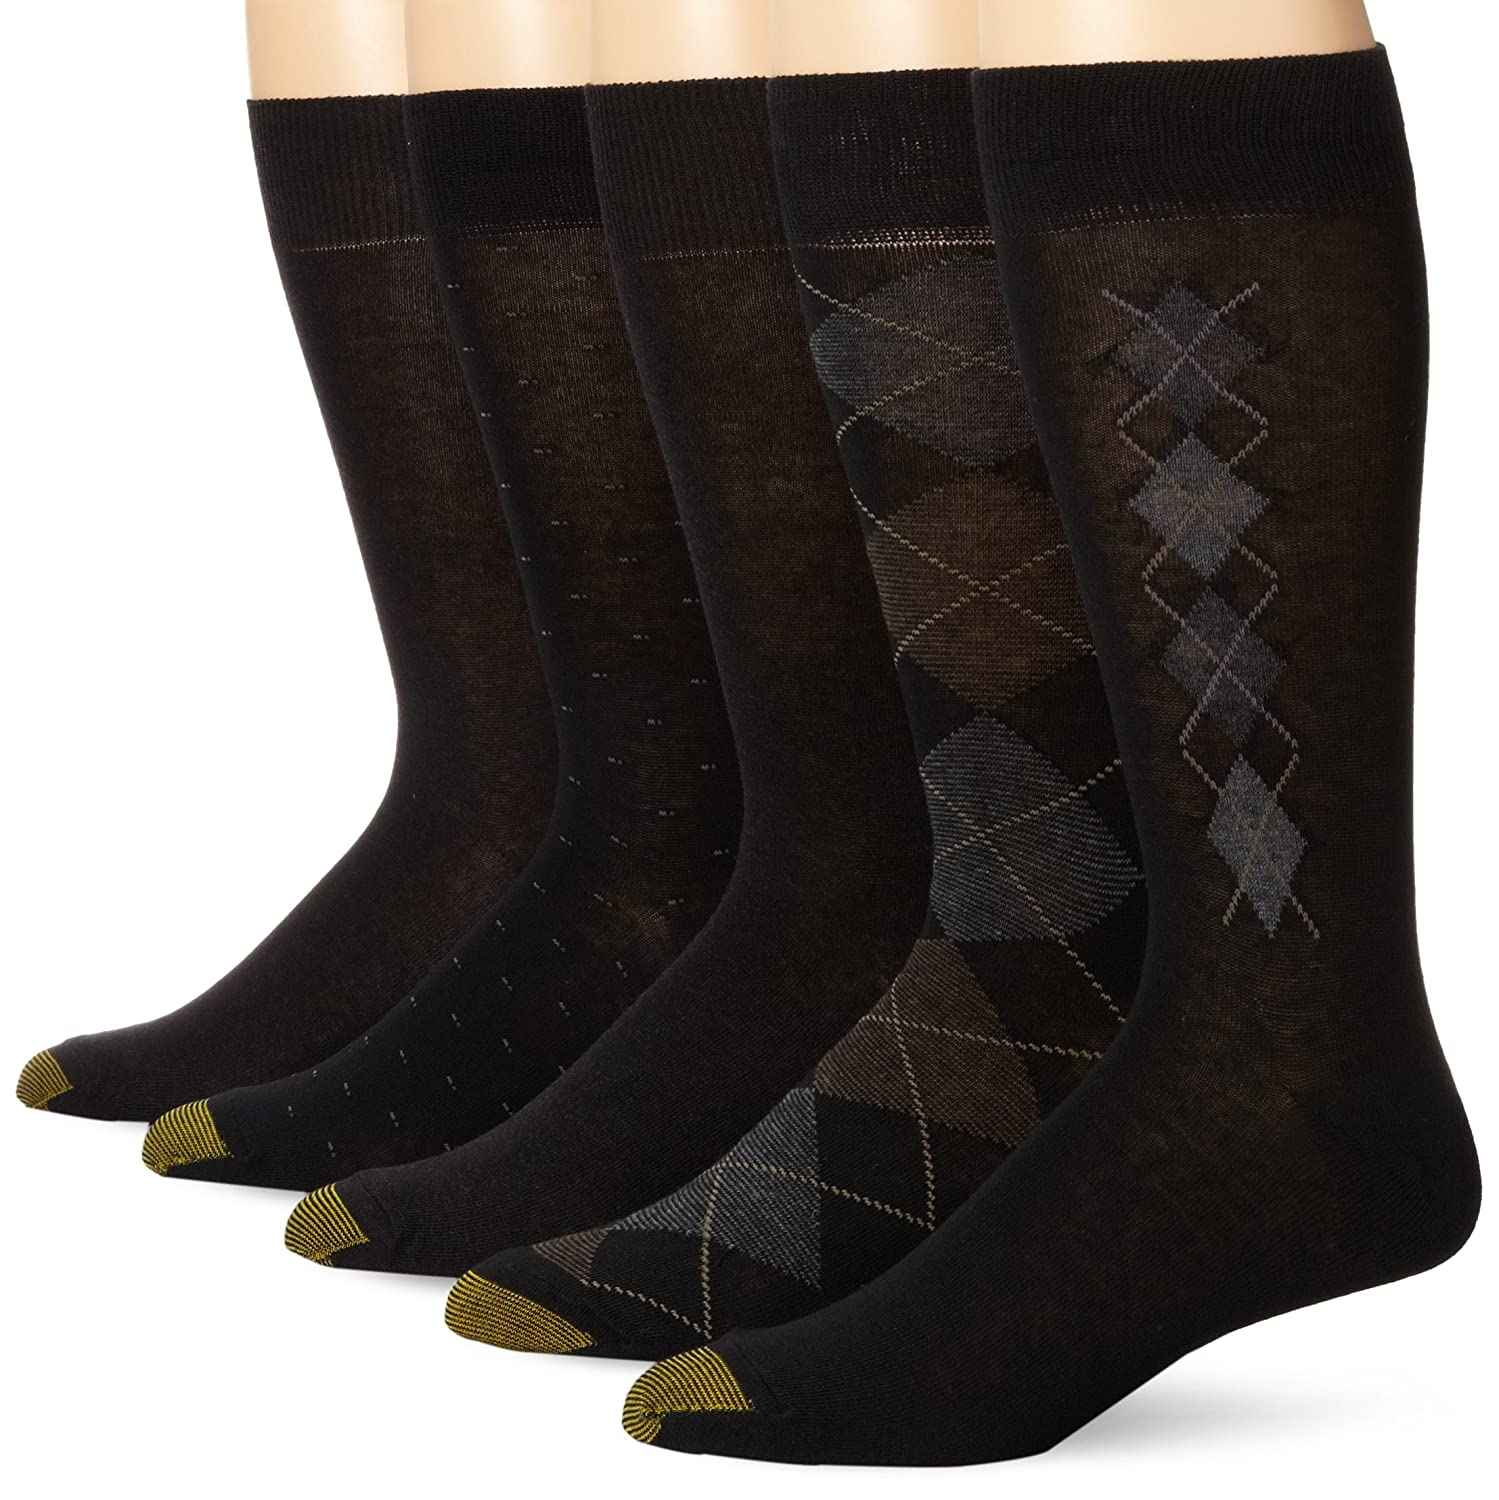 Gold Toe Men's Argyle Assorted Crew Socks, Five Pairs Black/Charcoal Gold Toe Men's Socks 3045S